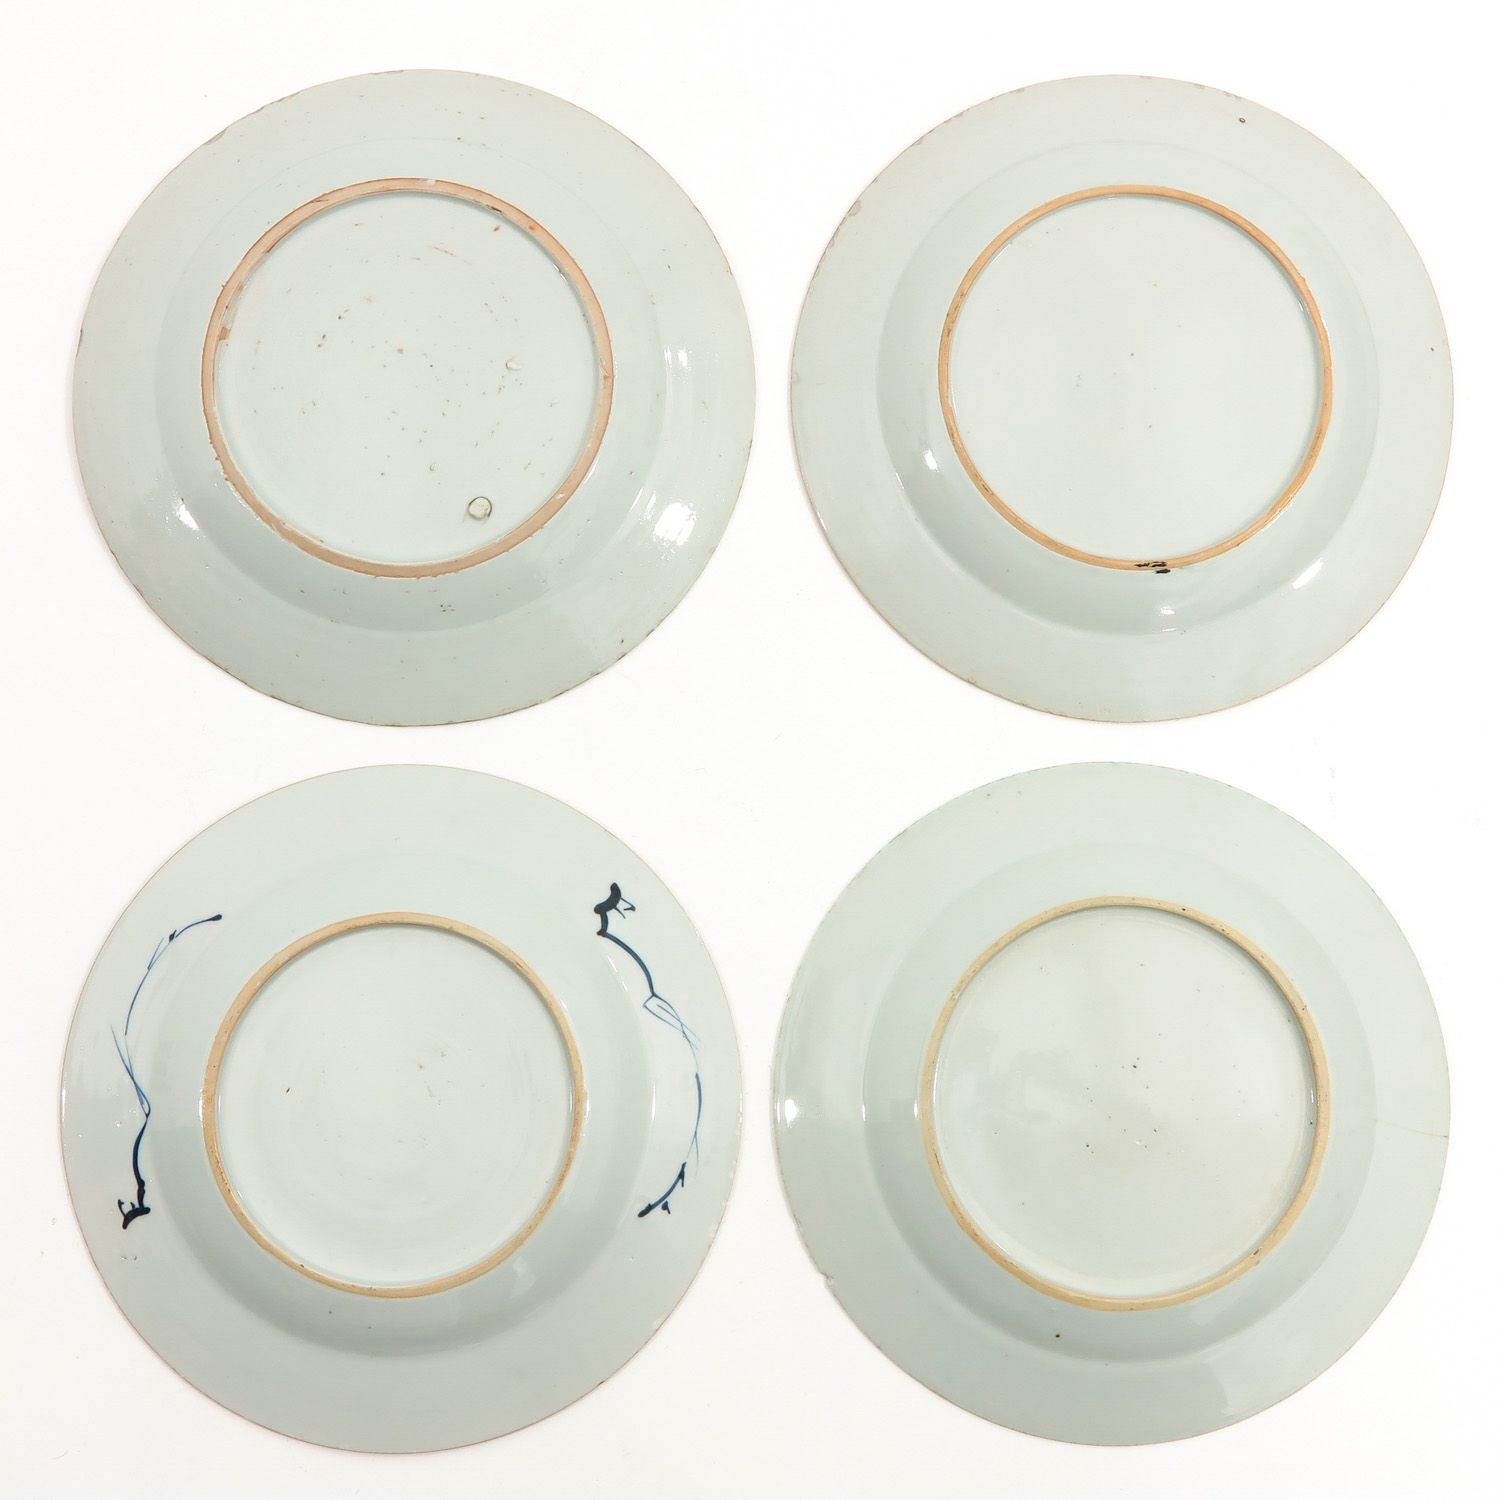 A Collection of 4 Blue and White Plates - Image 2 of 10